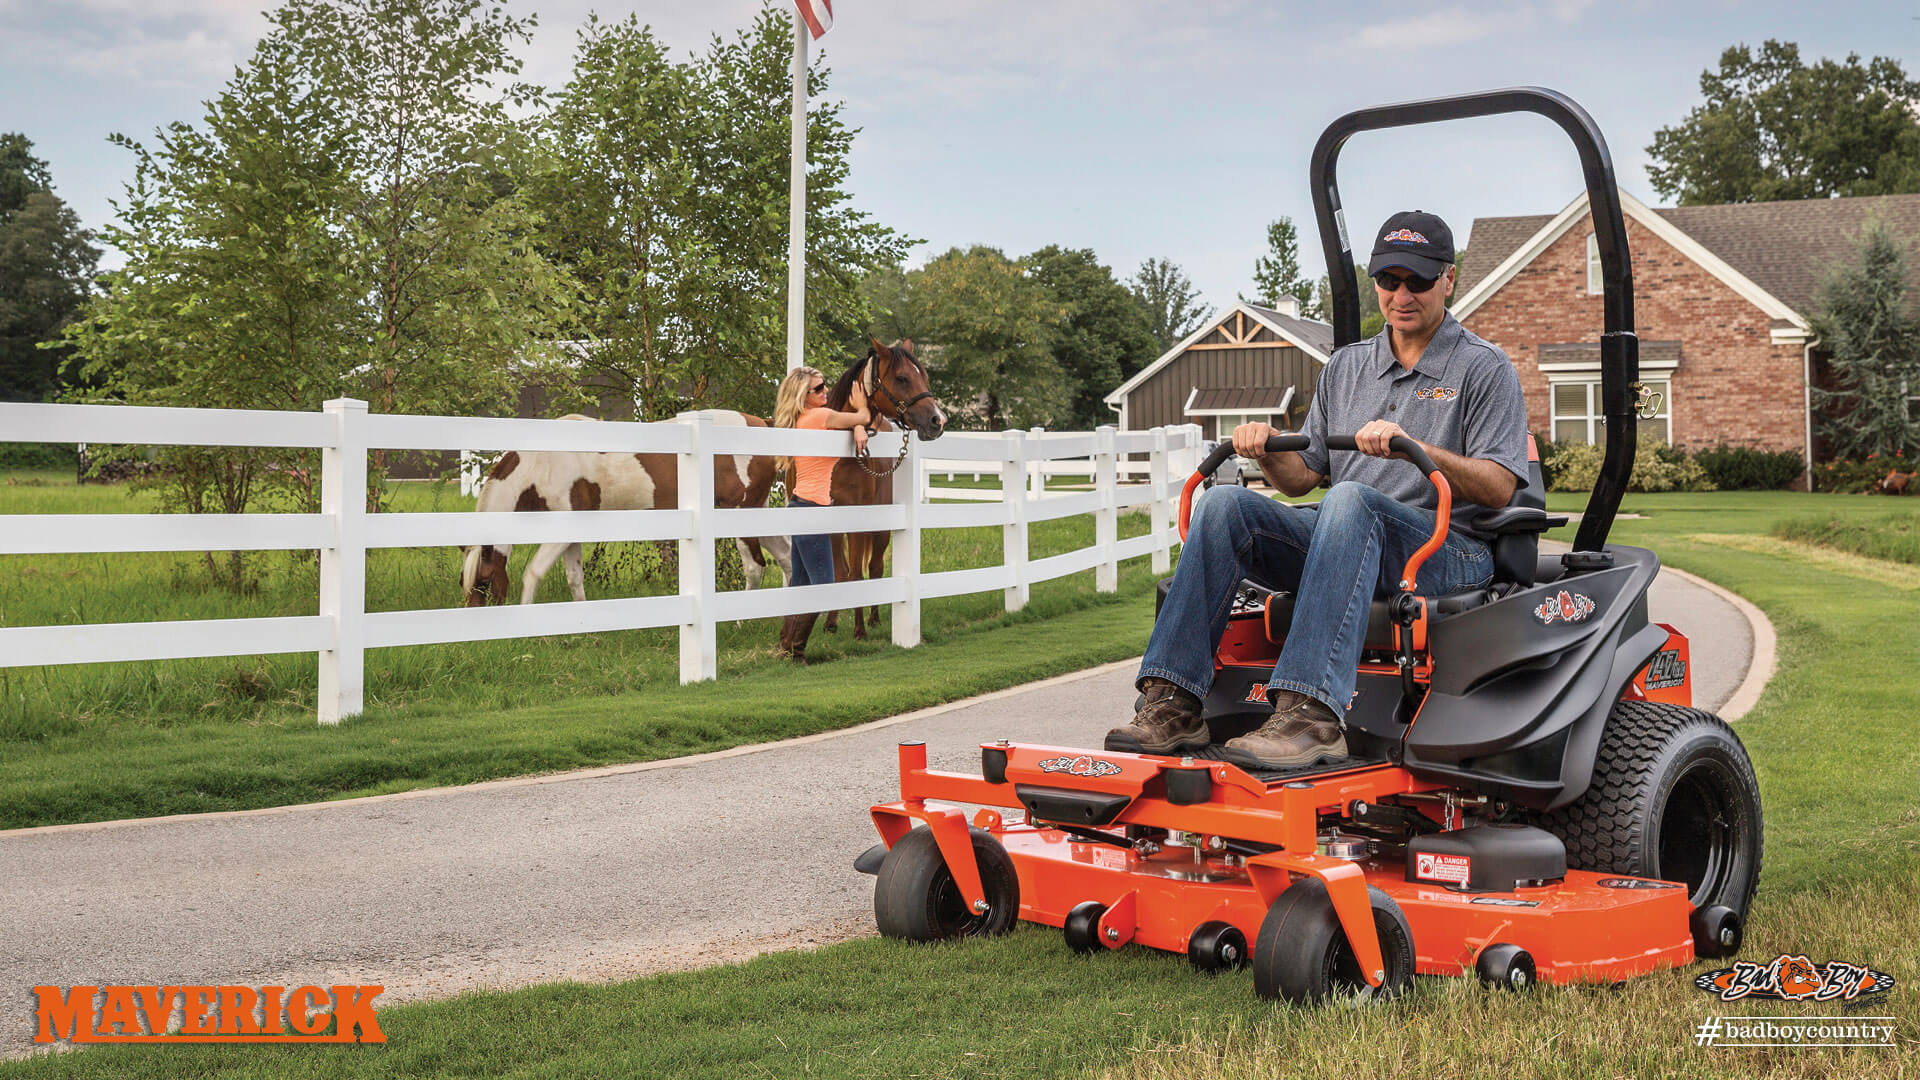 Image Result For Lawn Mower Financing With Bad Credit